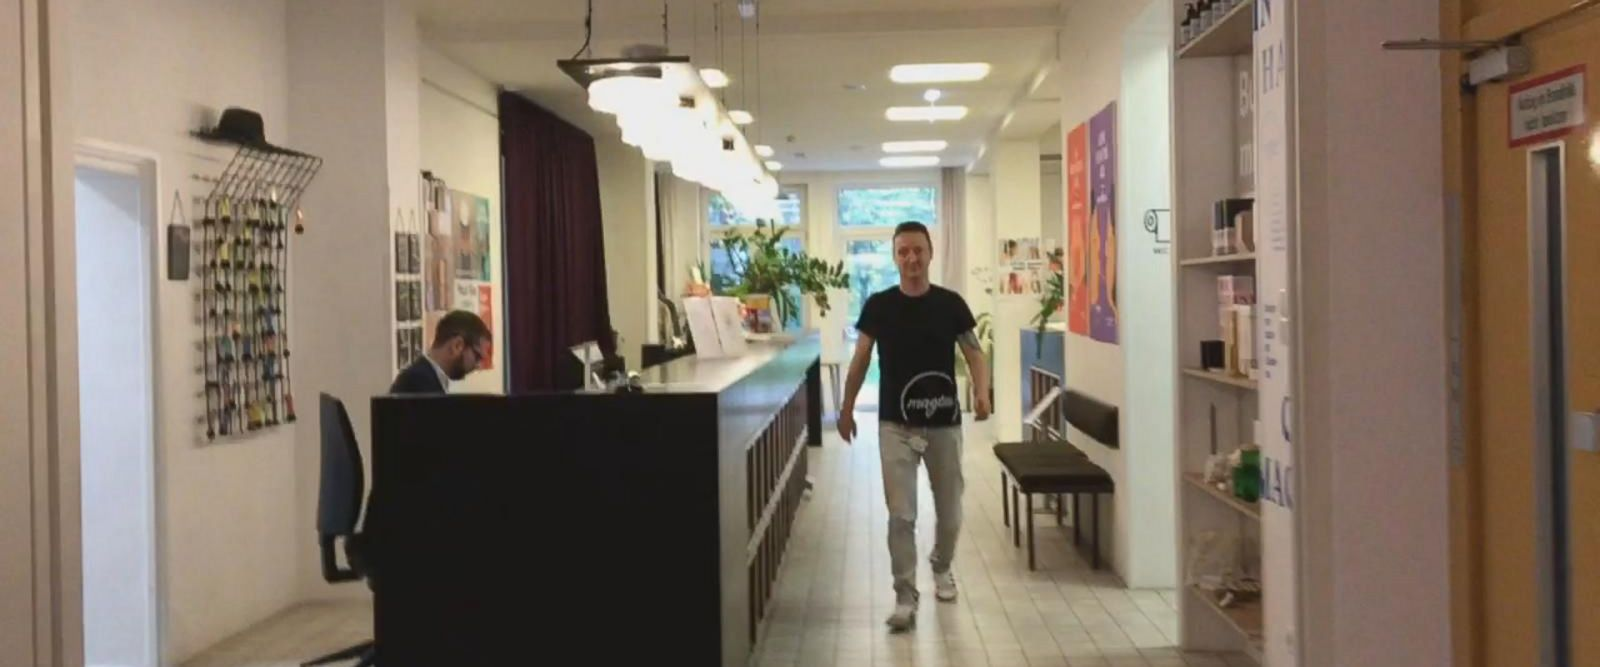 VIDEO: Austrian hotel helps refugees gain work experience